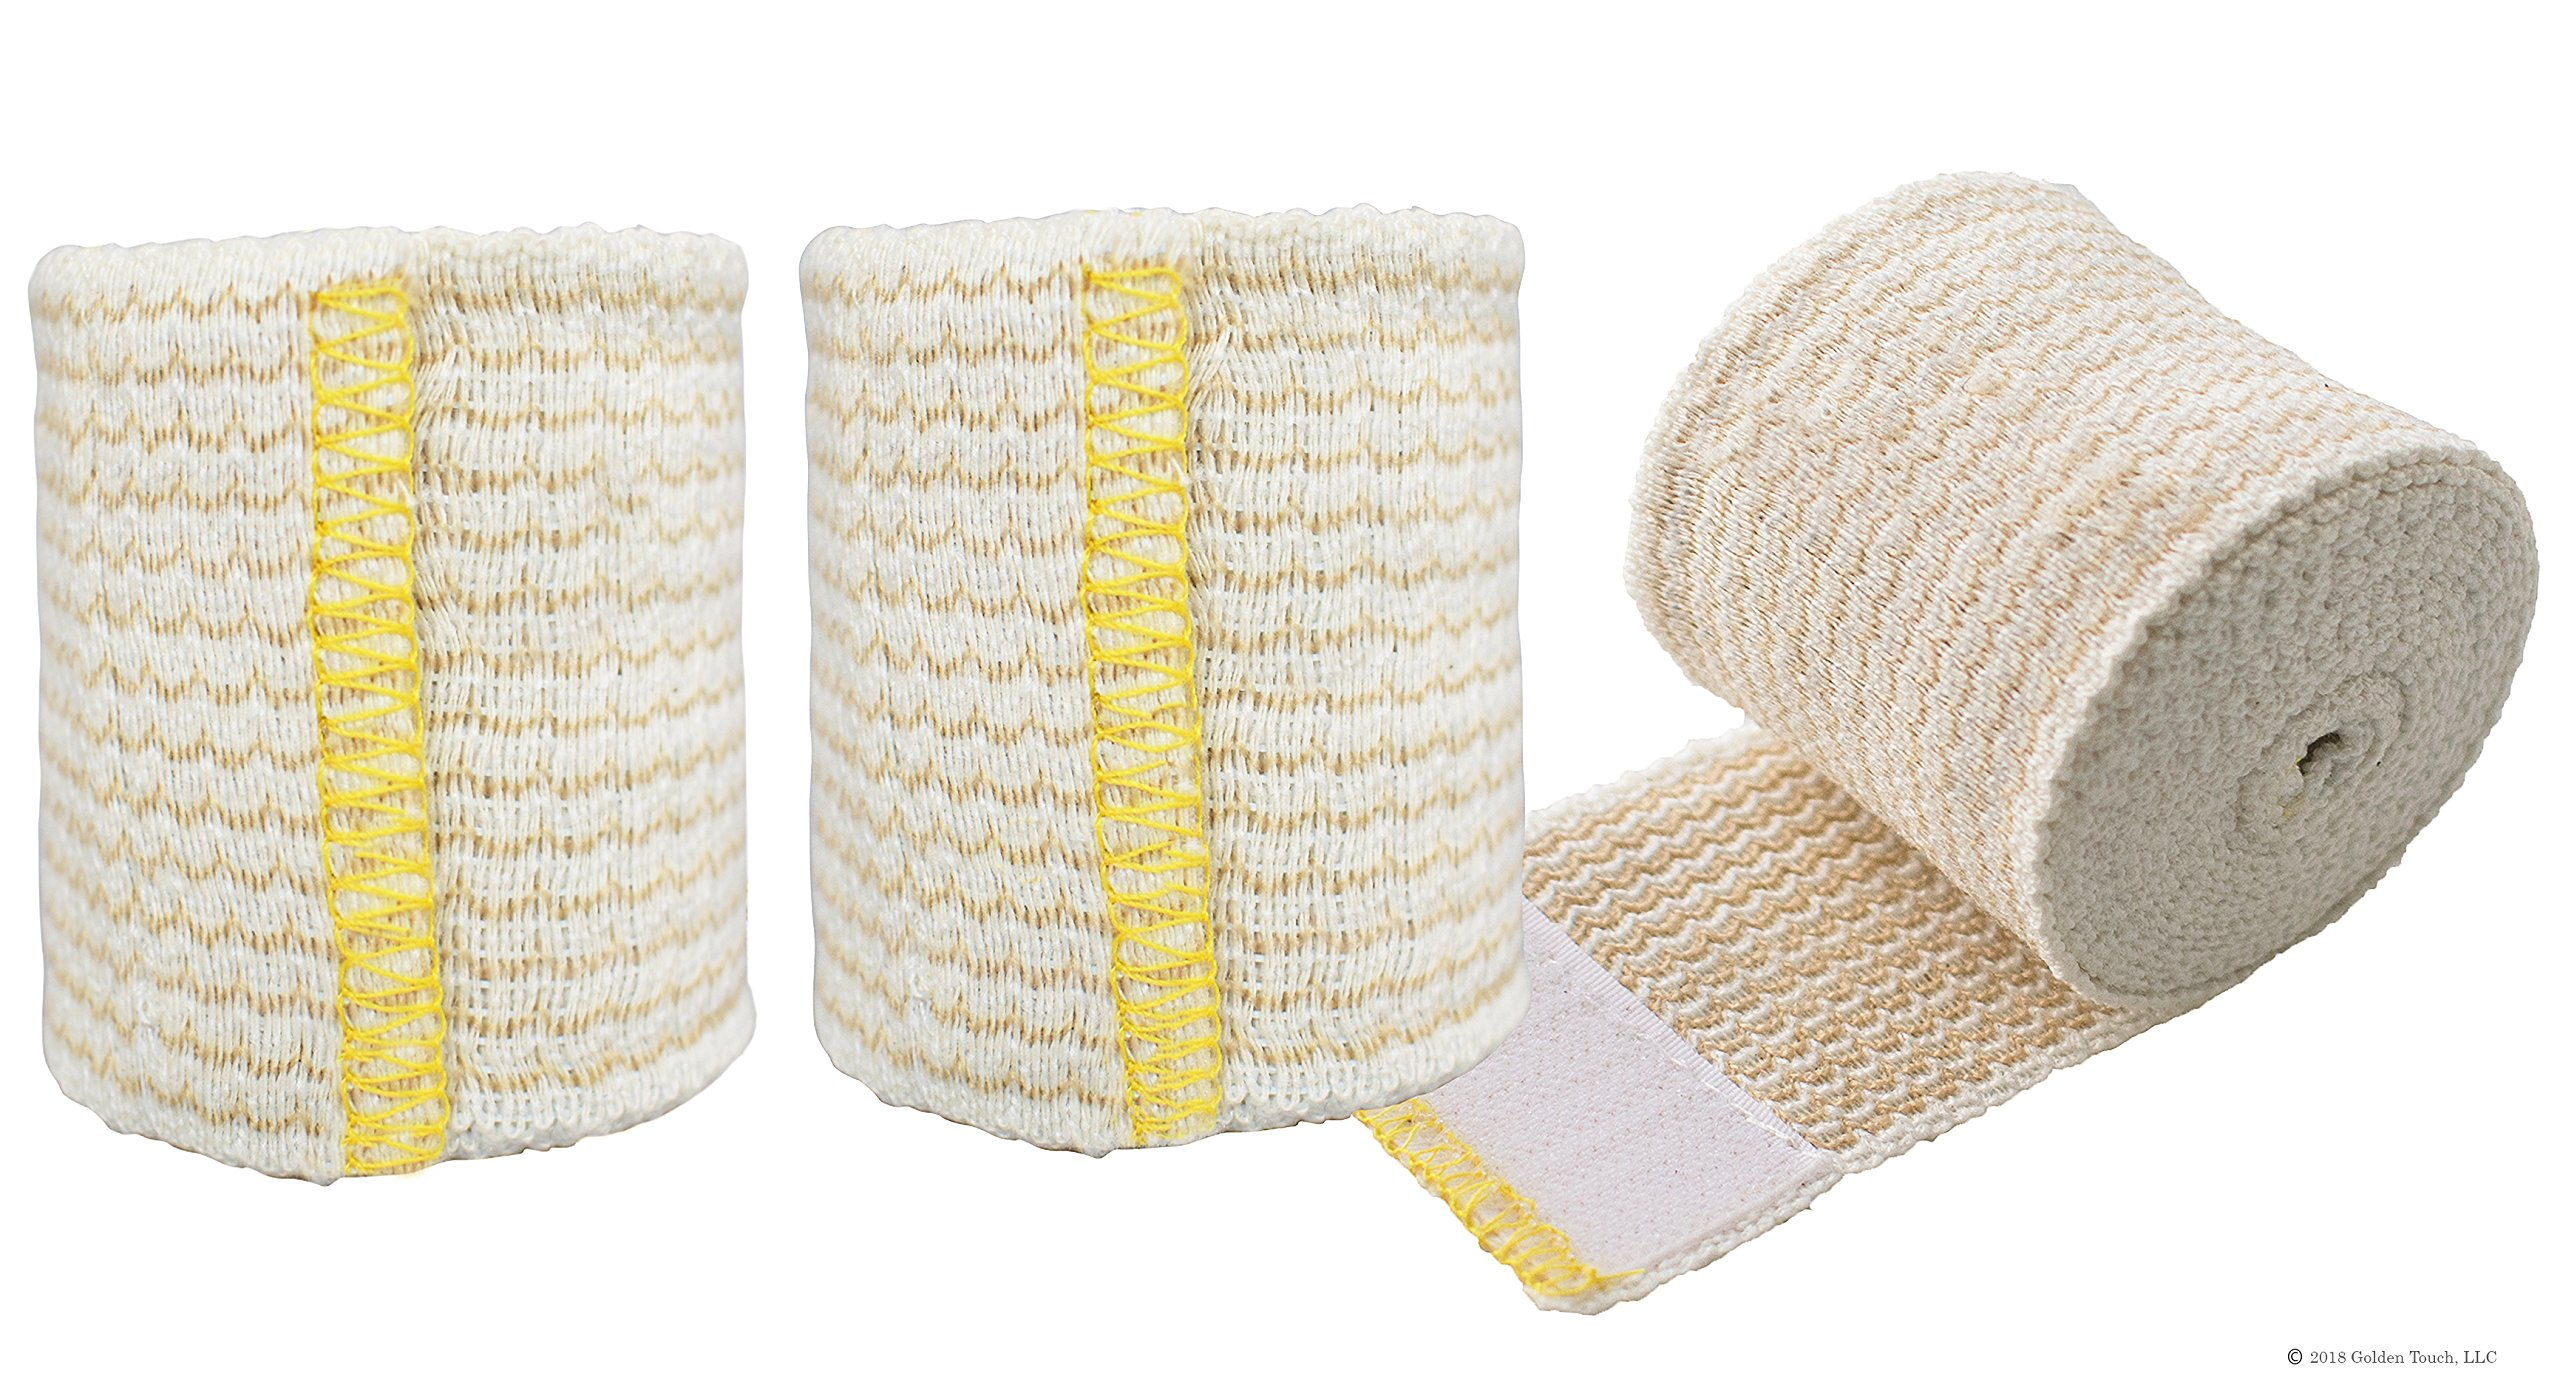 NexSkin Forever American Cotton Elastic Bandage Wrap with Hook and Loop Closure, 2'' Width (3 Pack)